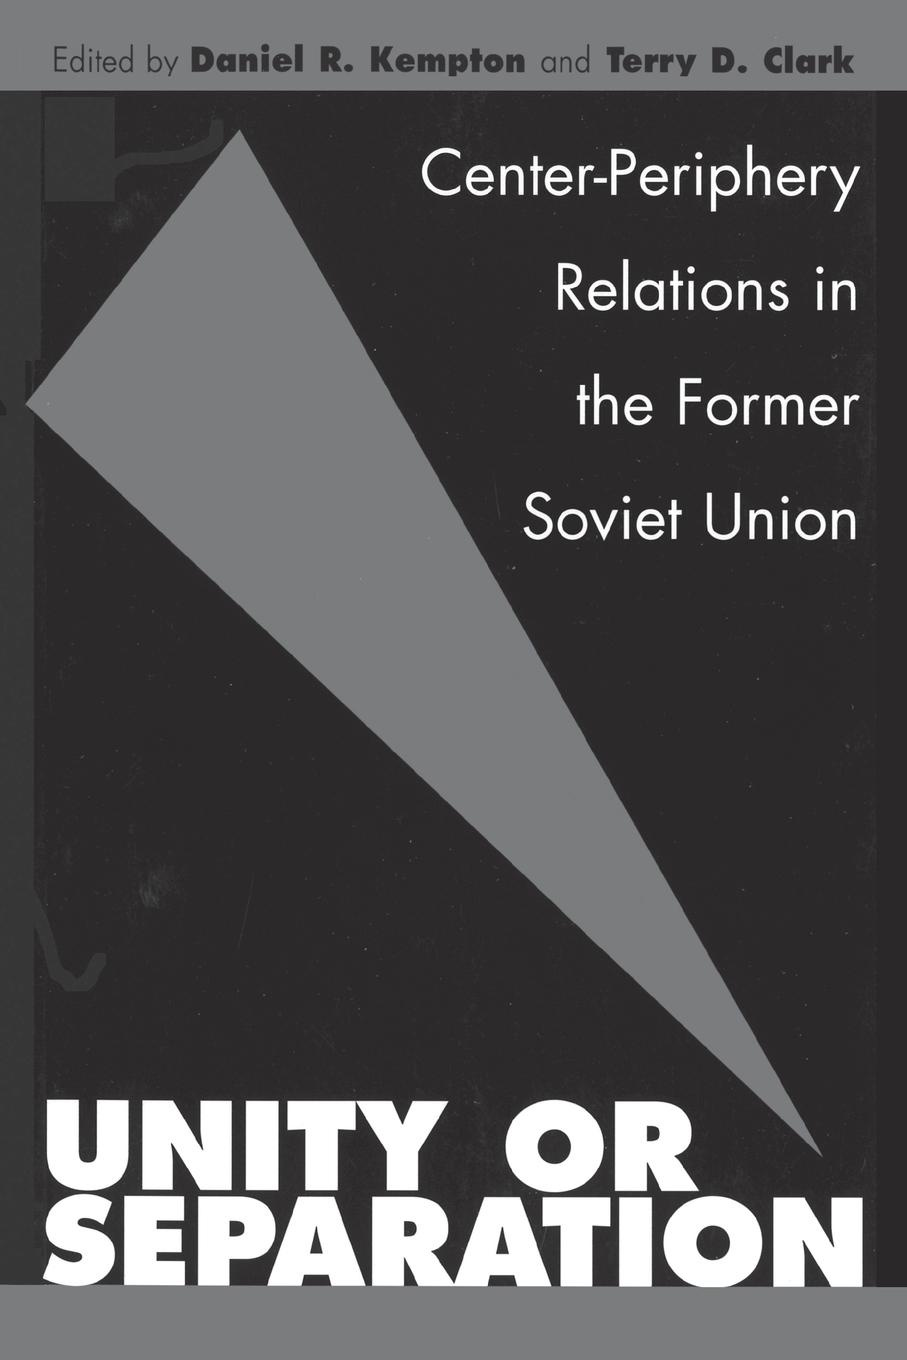 лучшая цена Daniel Kempton, Terry Clark Unity or Separation. Center-Periphery Relations in the Former Soviet Union